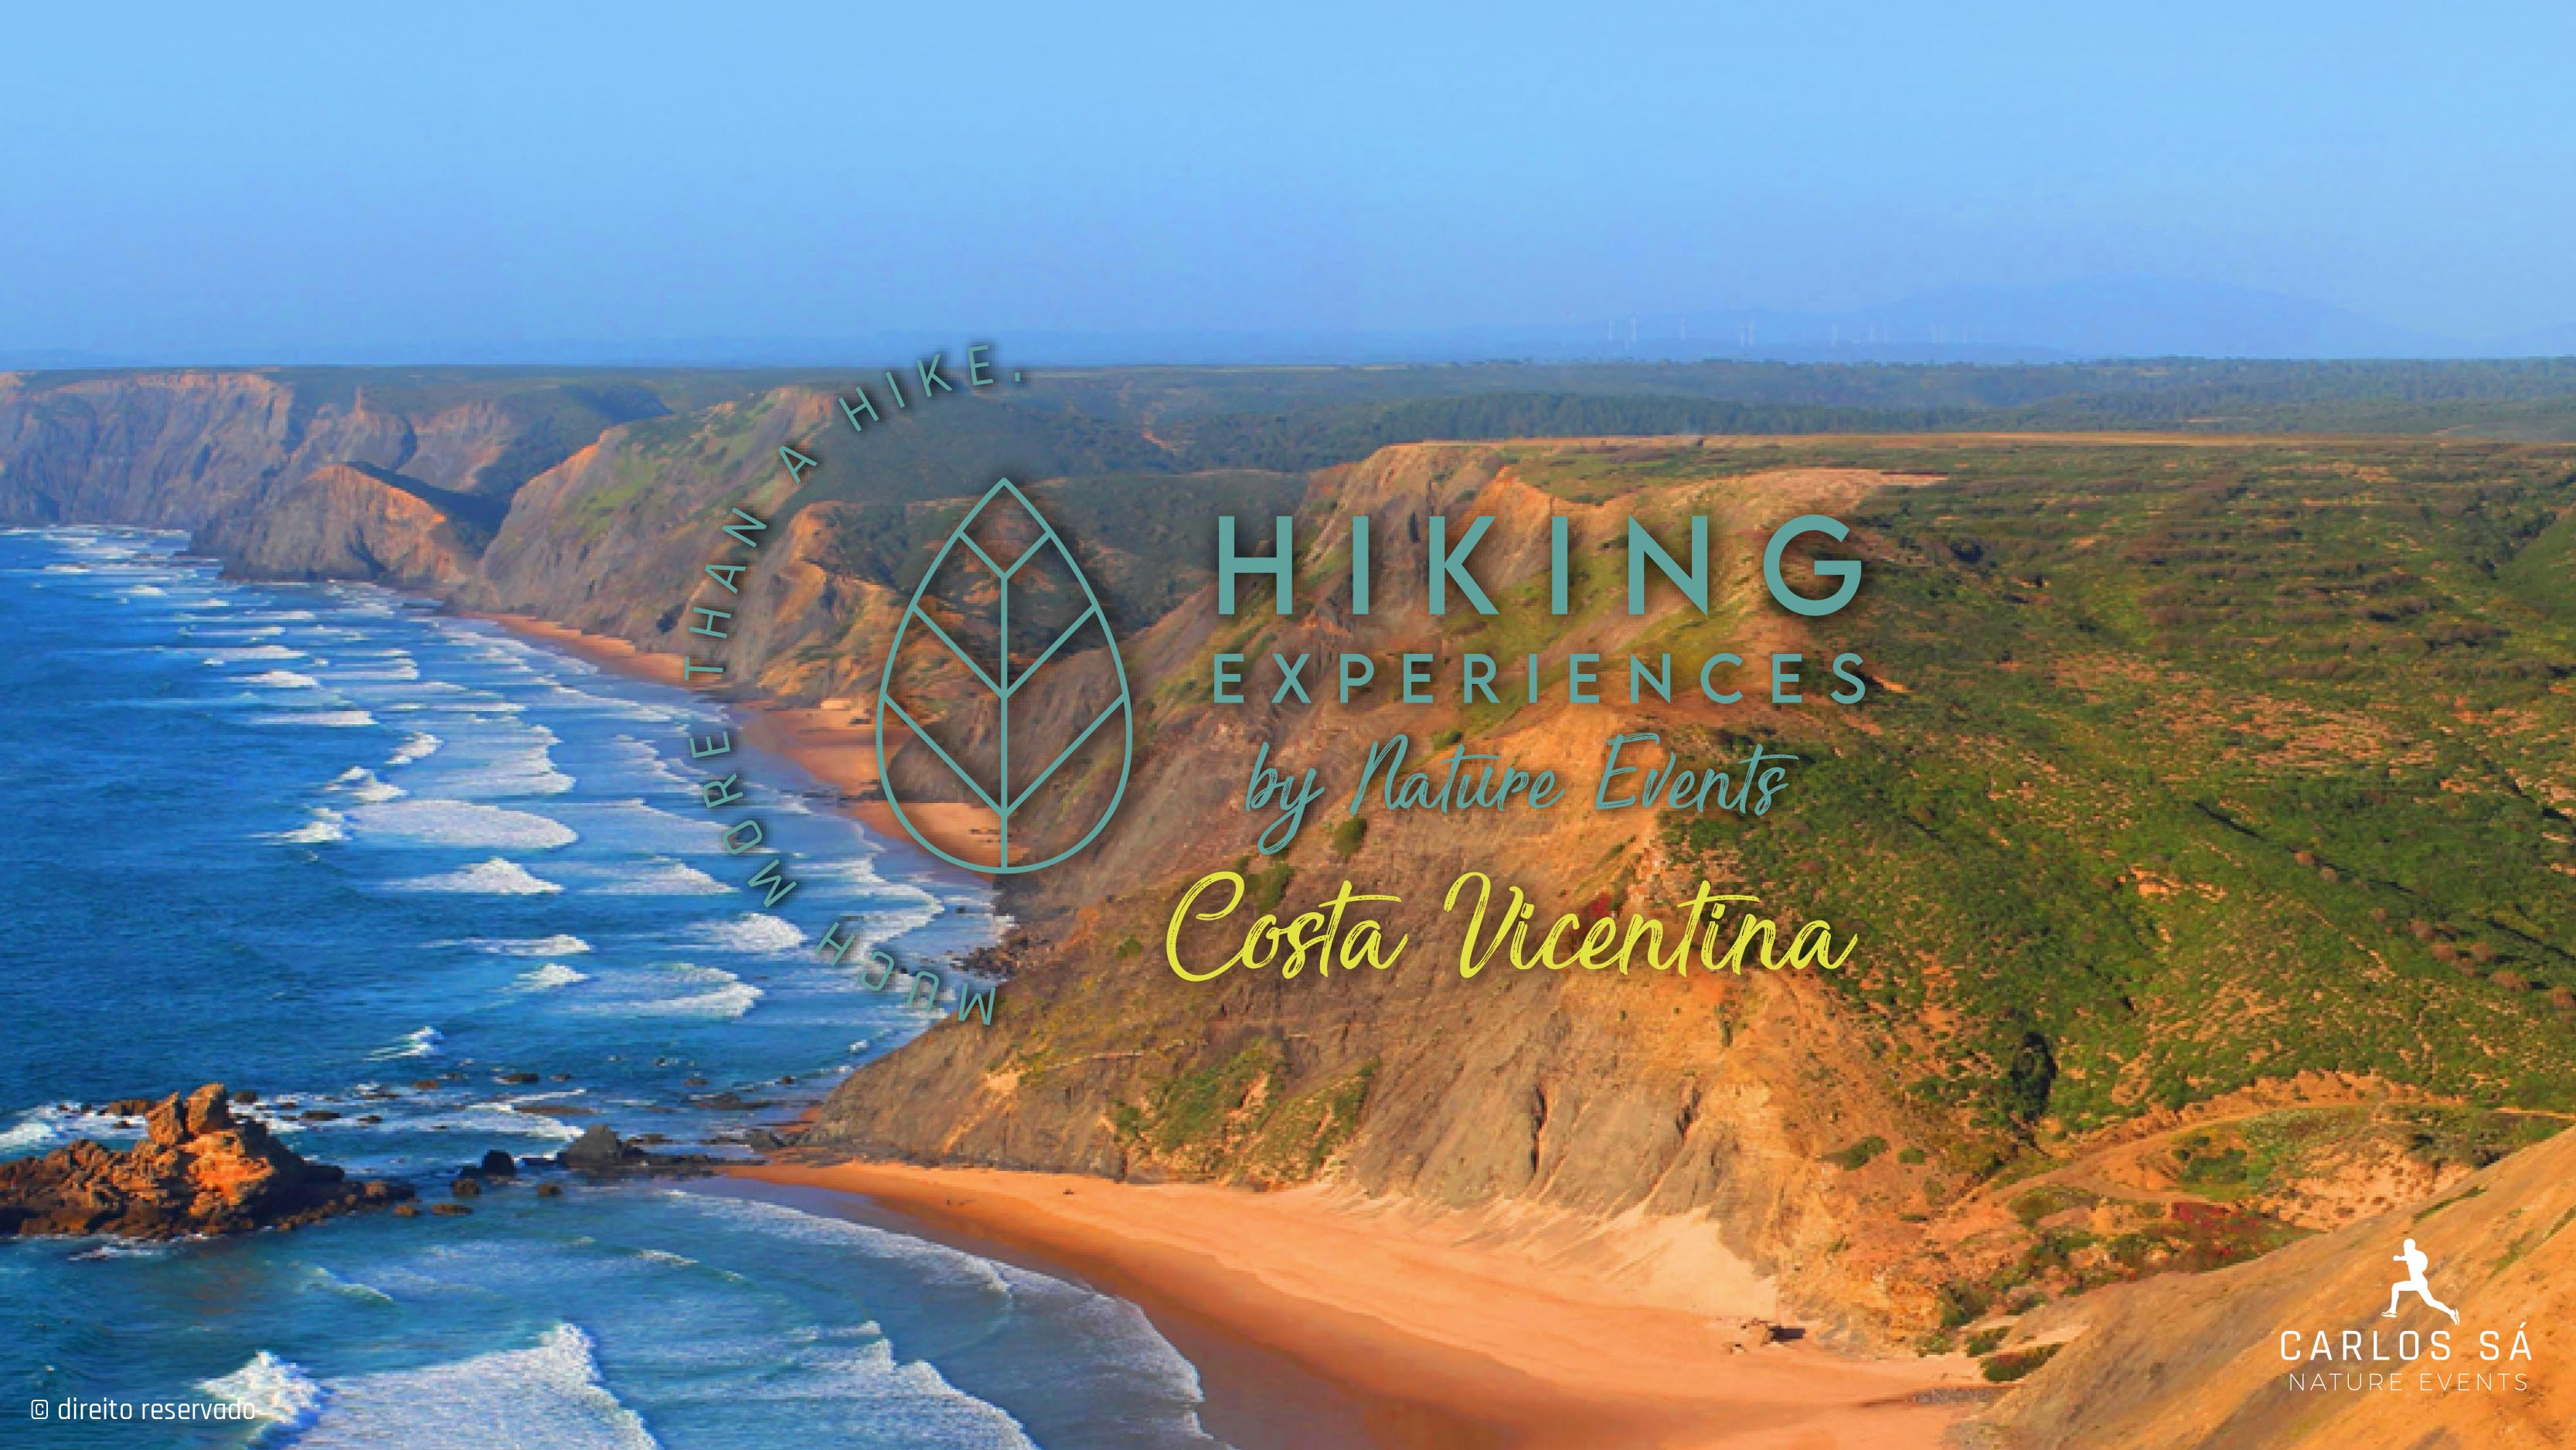 HIKING EXPERIENCES COSTA VICENTINA